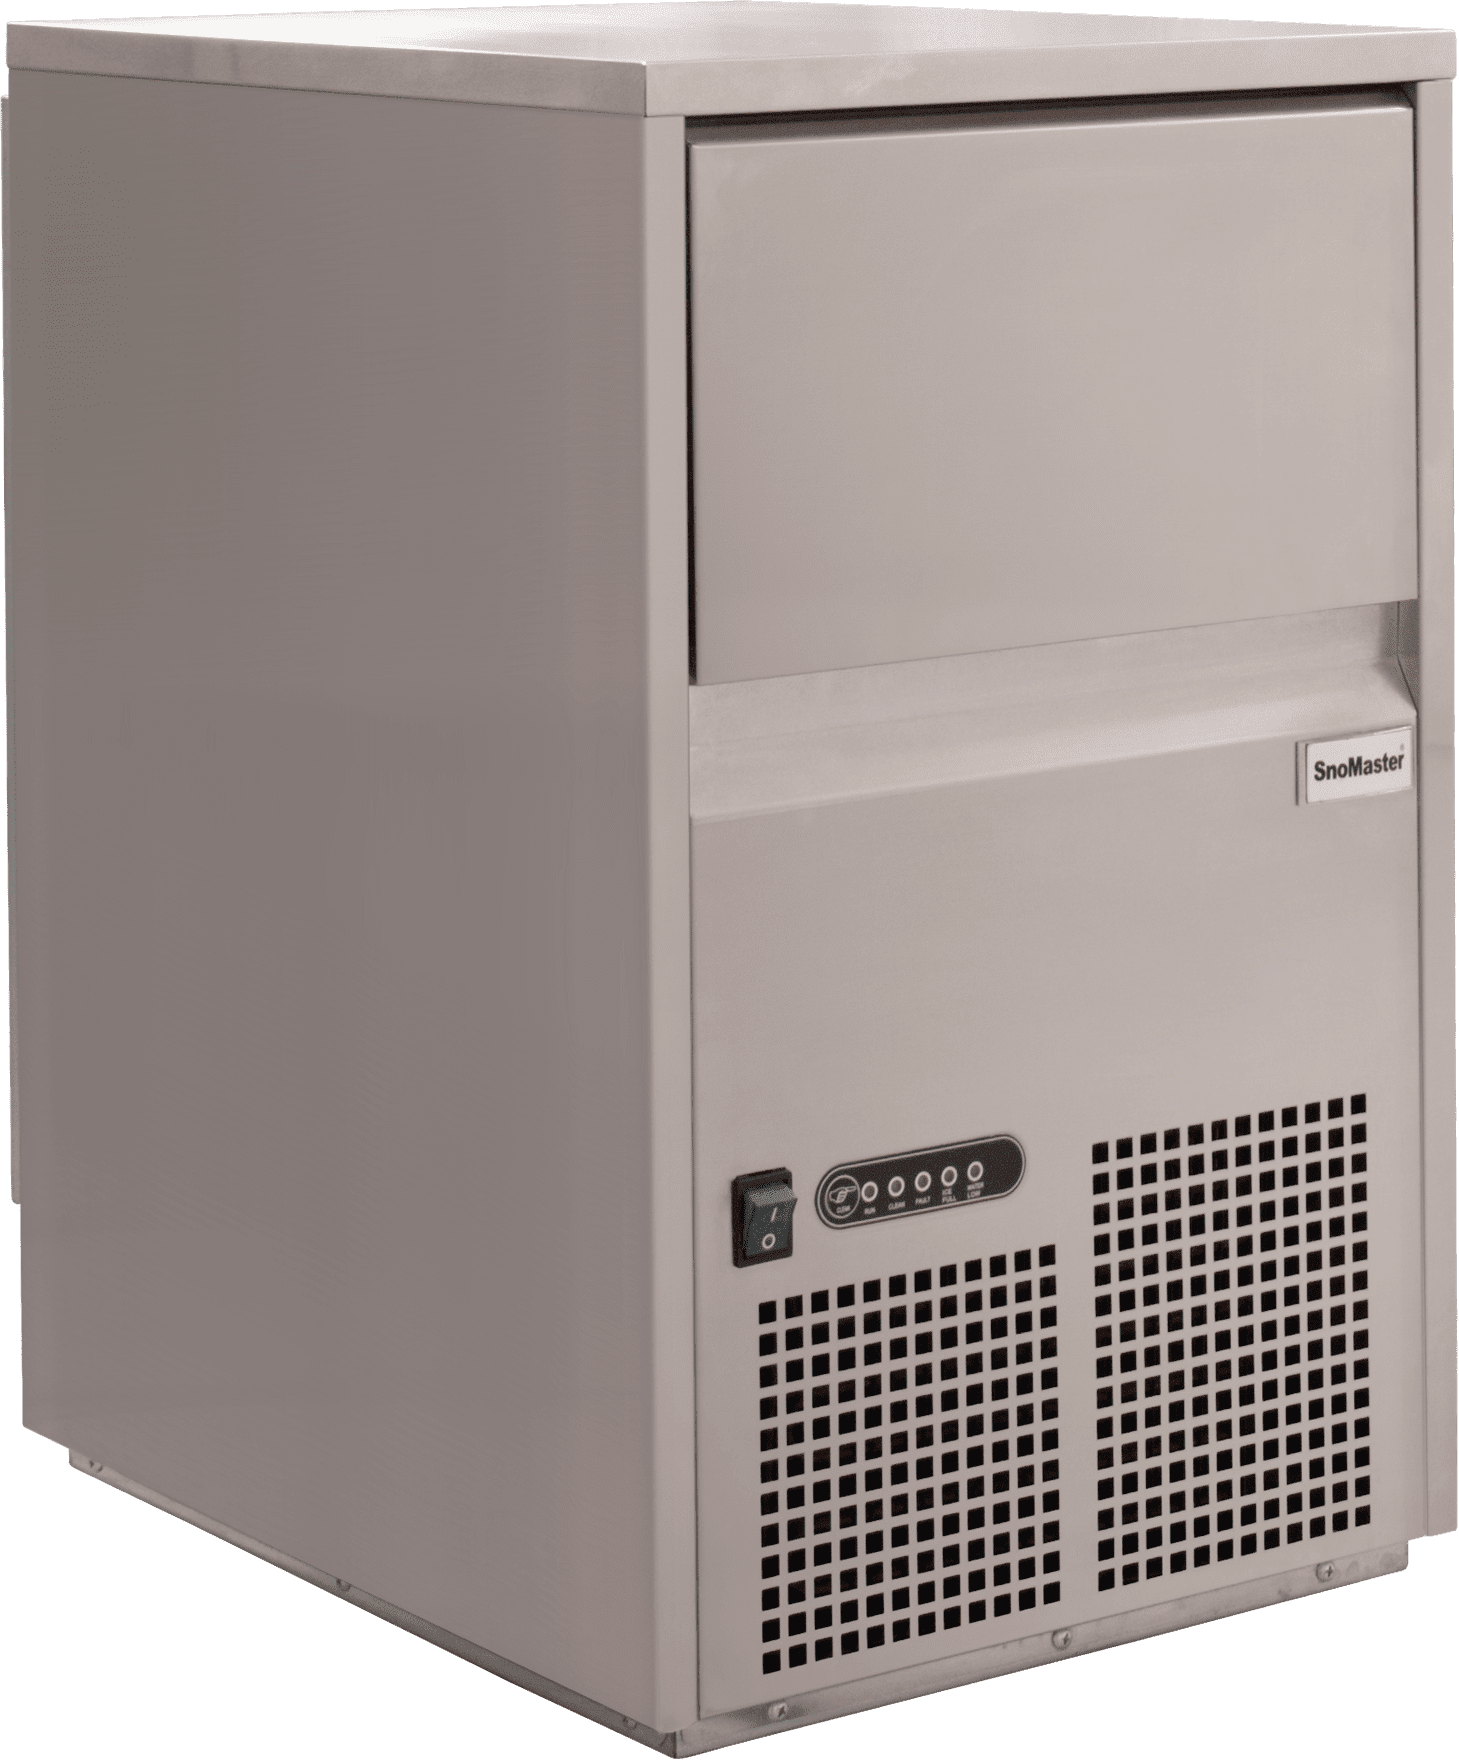 SnoMaster 26kg Plumbed-In Commercial Ice Maker for Bars and Restaurants (SM-26S) Angled View Left